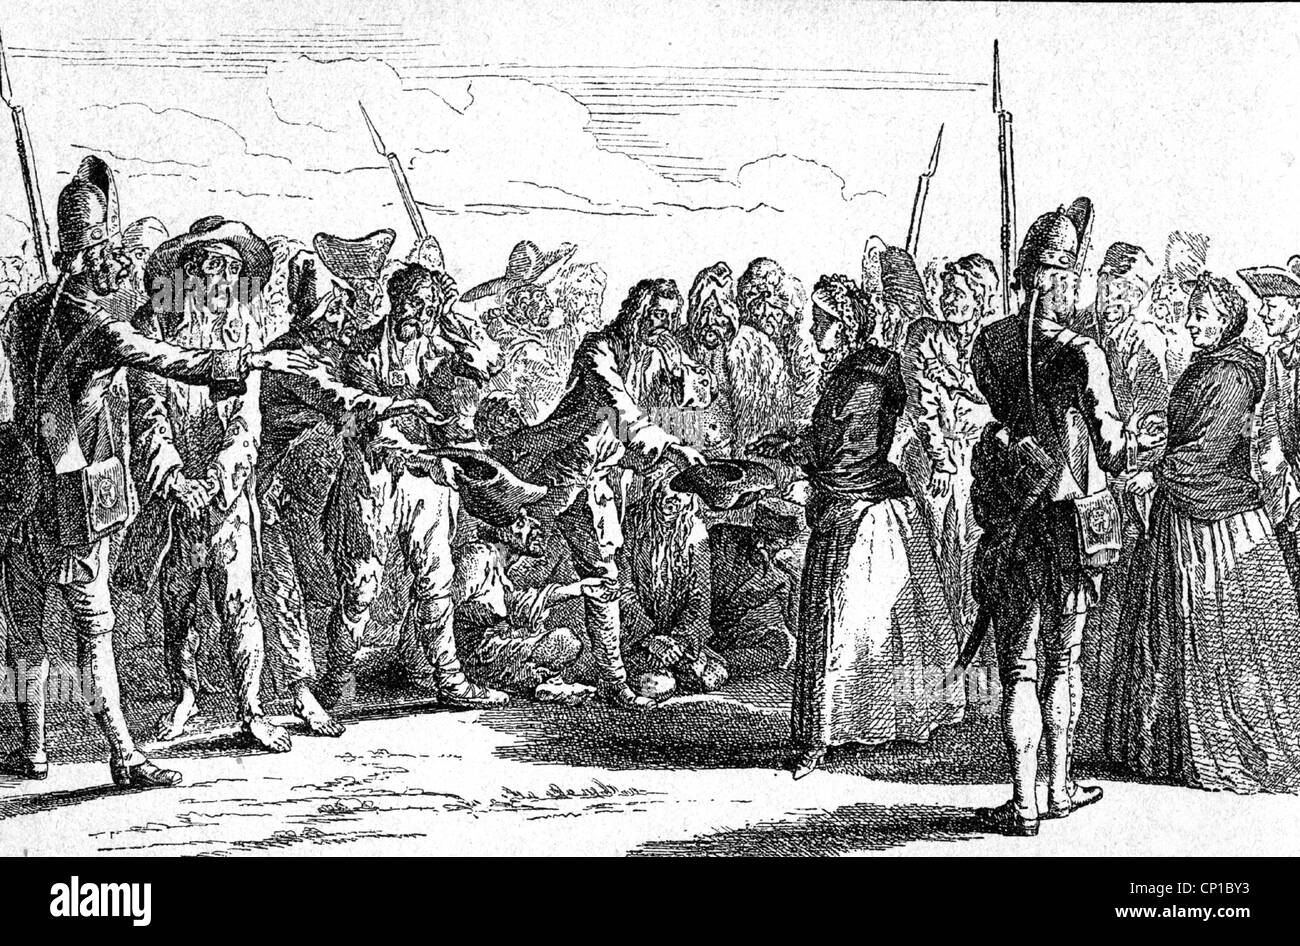 Seven Years' War, 1756 - 1763, prisoners of war, captured Russian soldiers receive alms from citizens of Berlin, - Stock Image